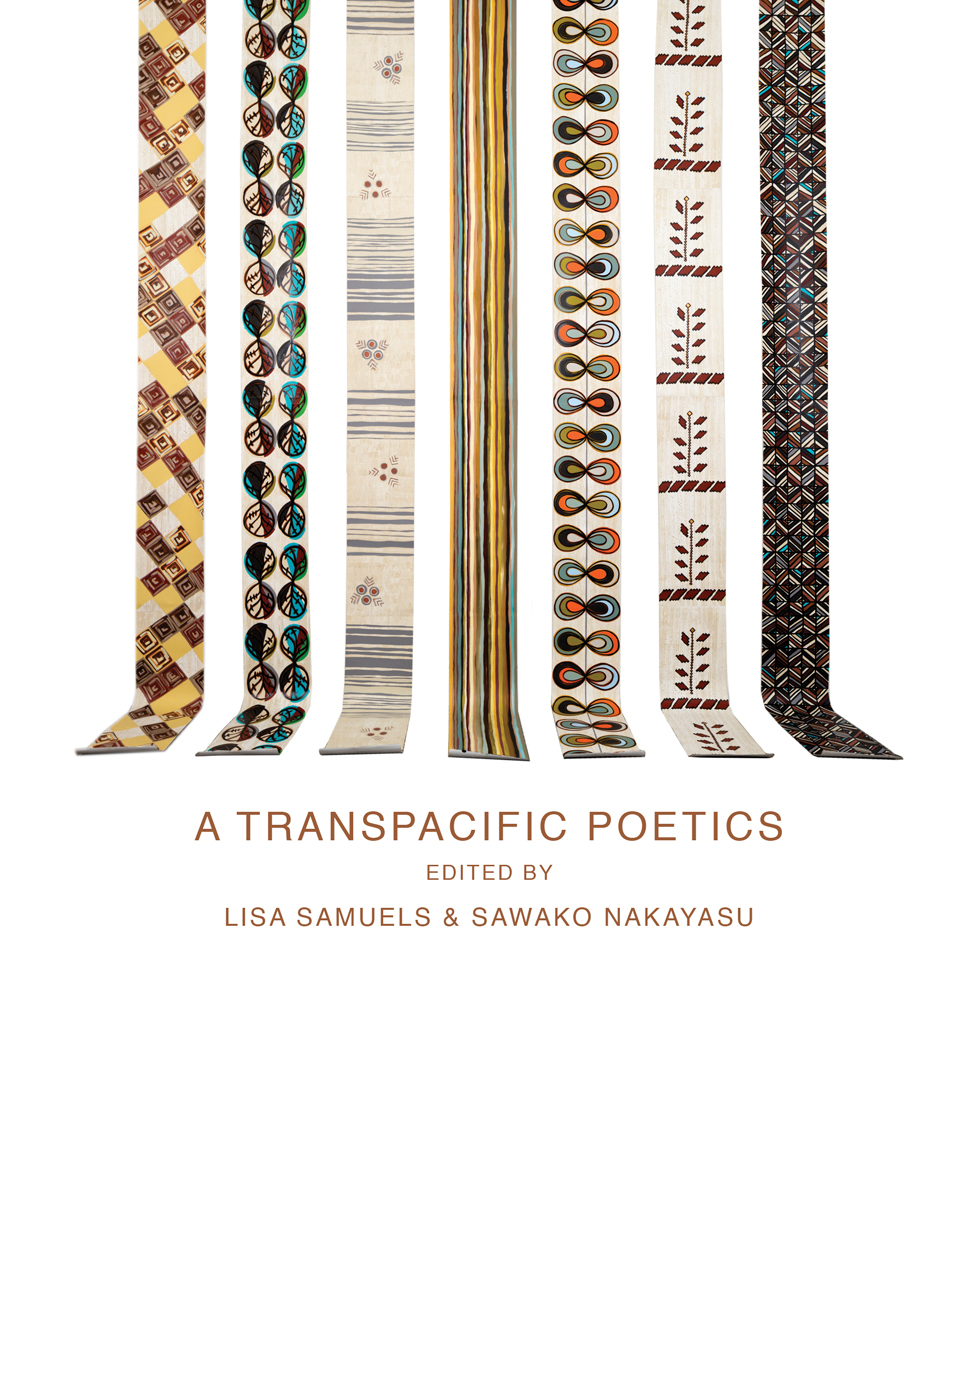 A TransPacific Poetics